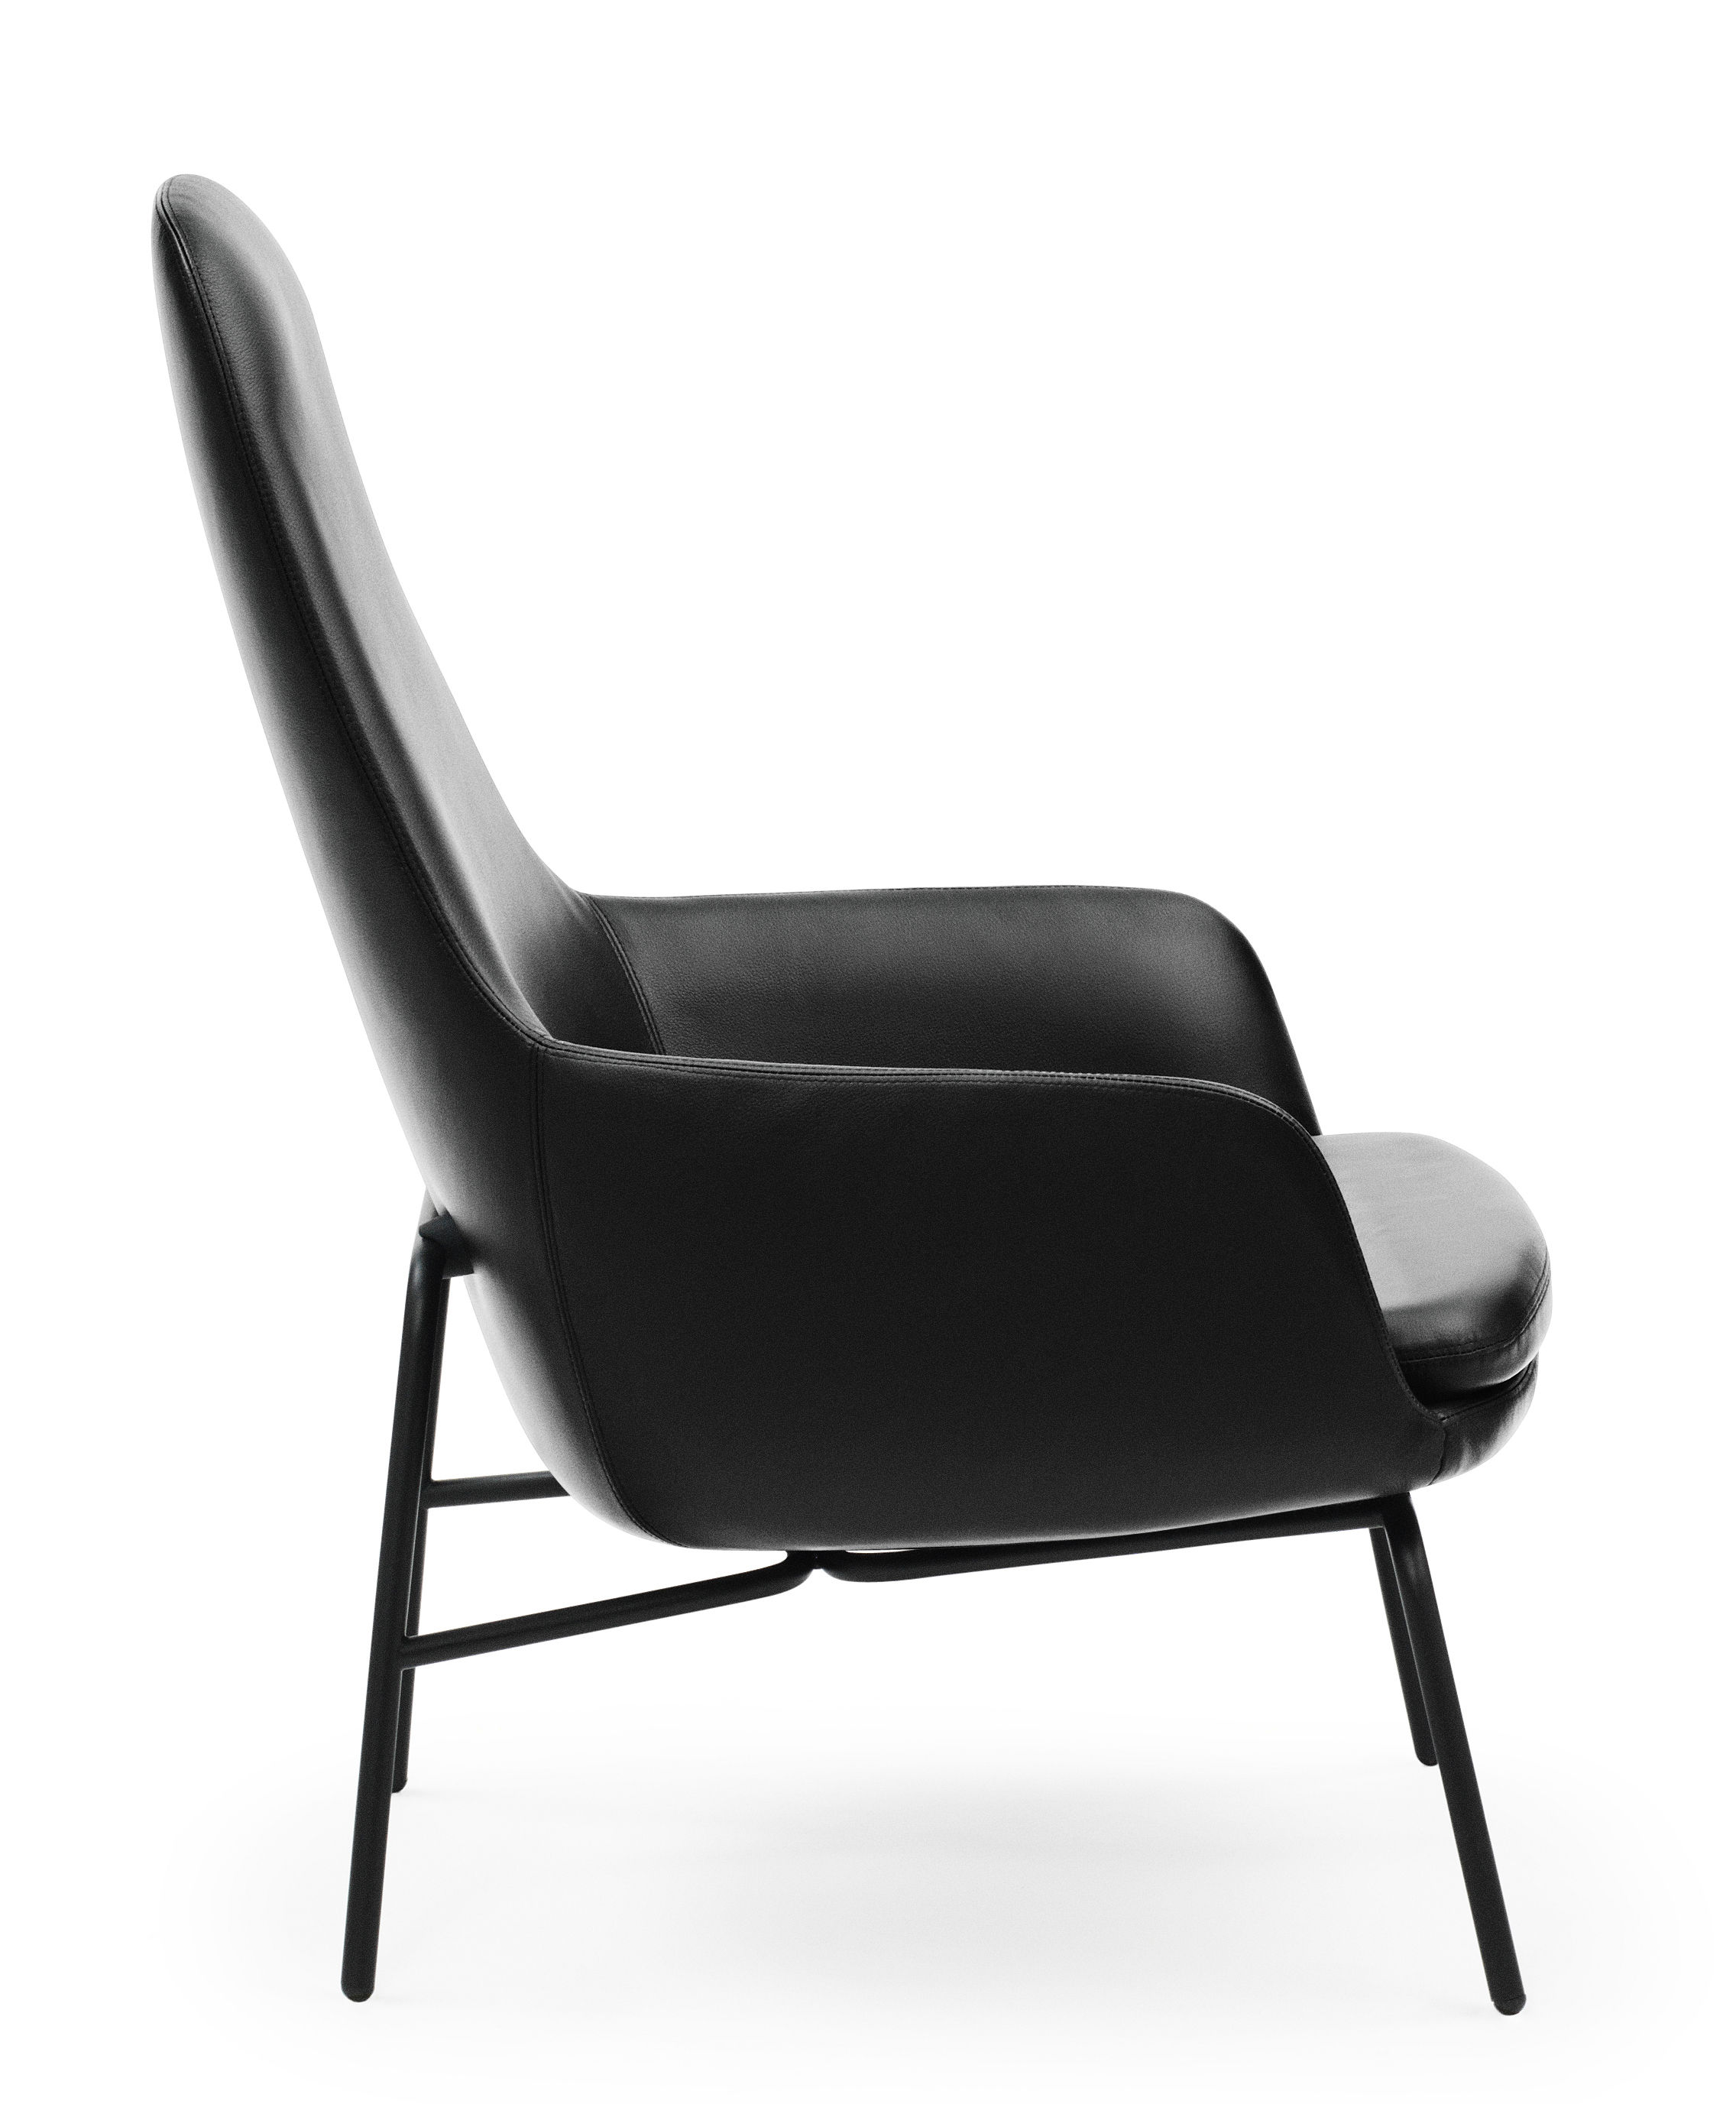 fauteuil era dossier haut cuir m tal cuir noir pieds noirs normann copenhagen. Black Bedroom Furniture Sets. Home Design Ideas